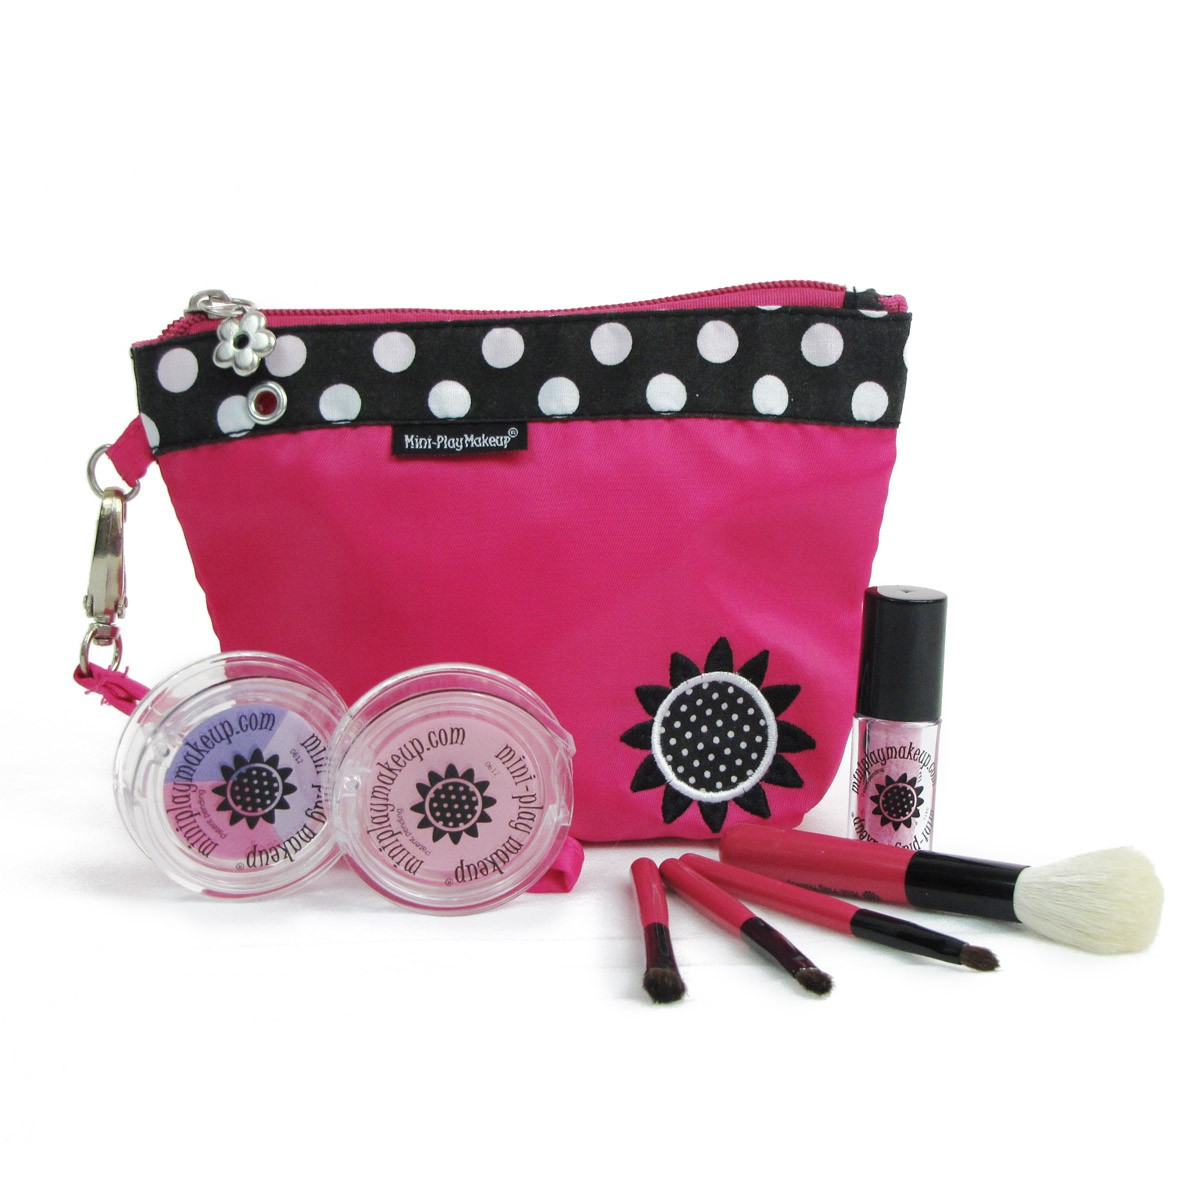 mini-clutch-purse-kit-pink-01-1-.jpg